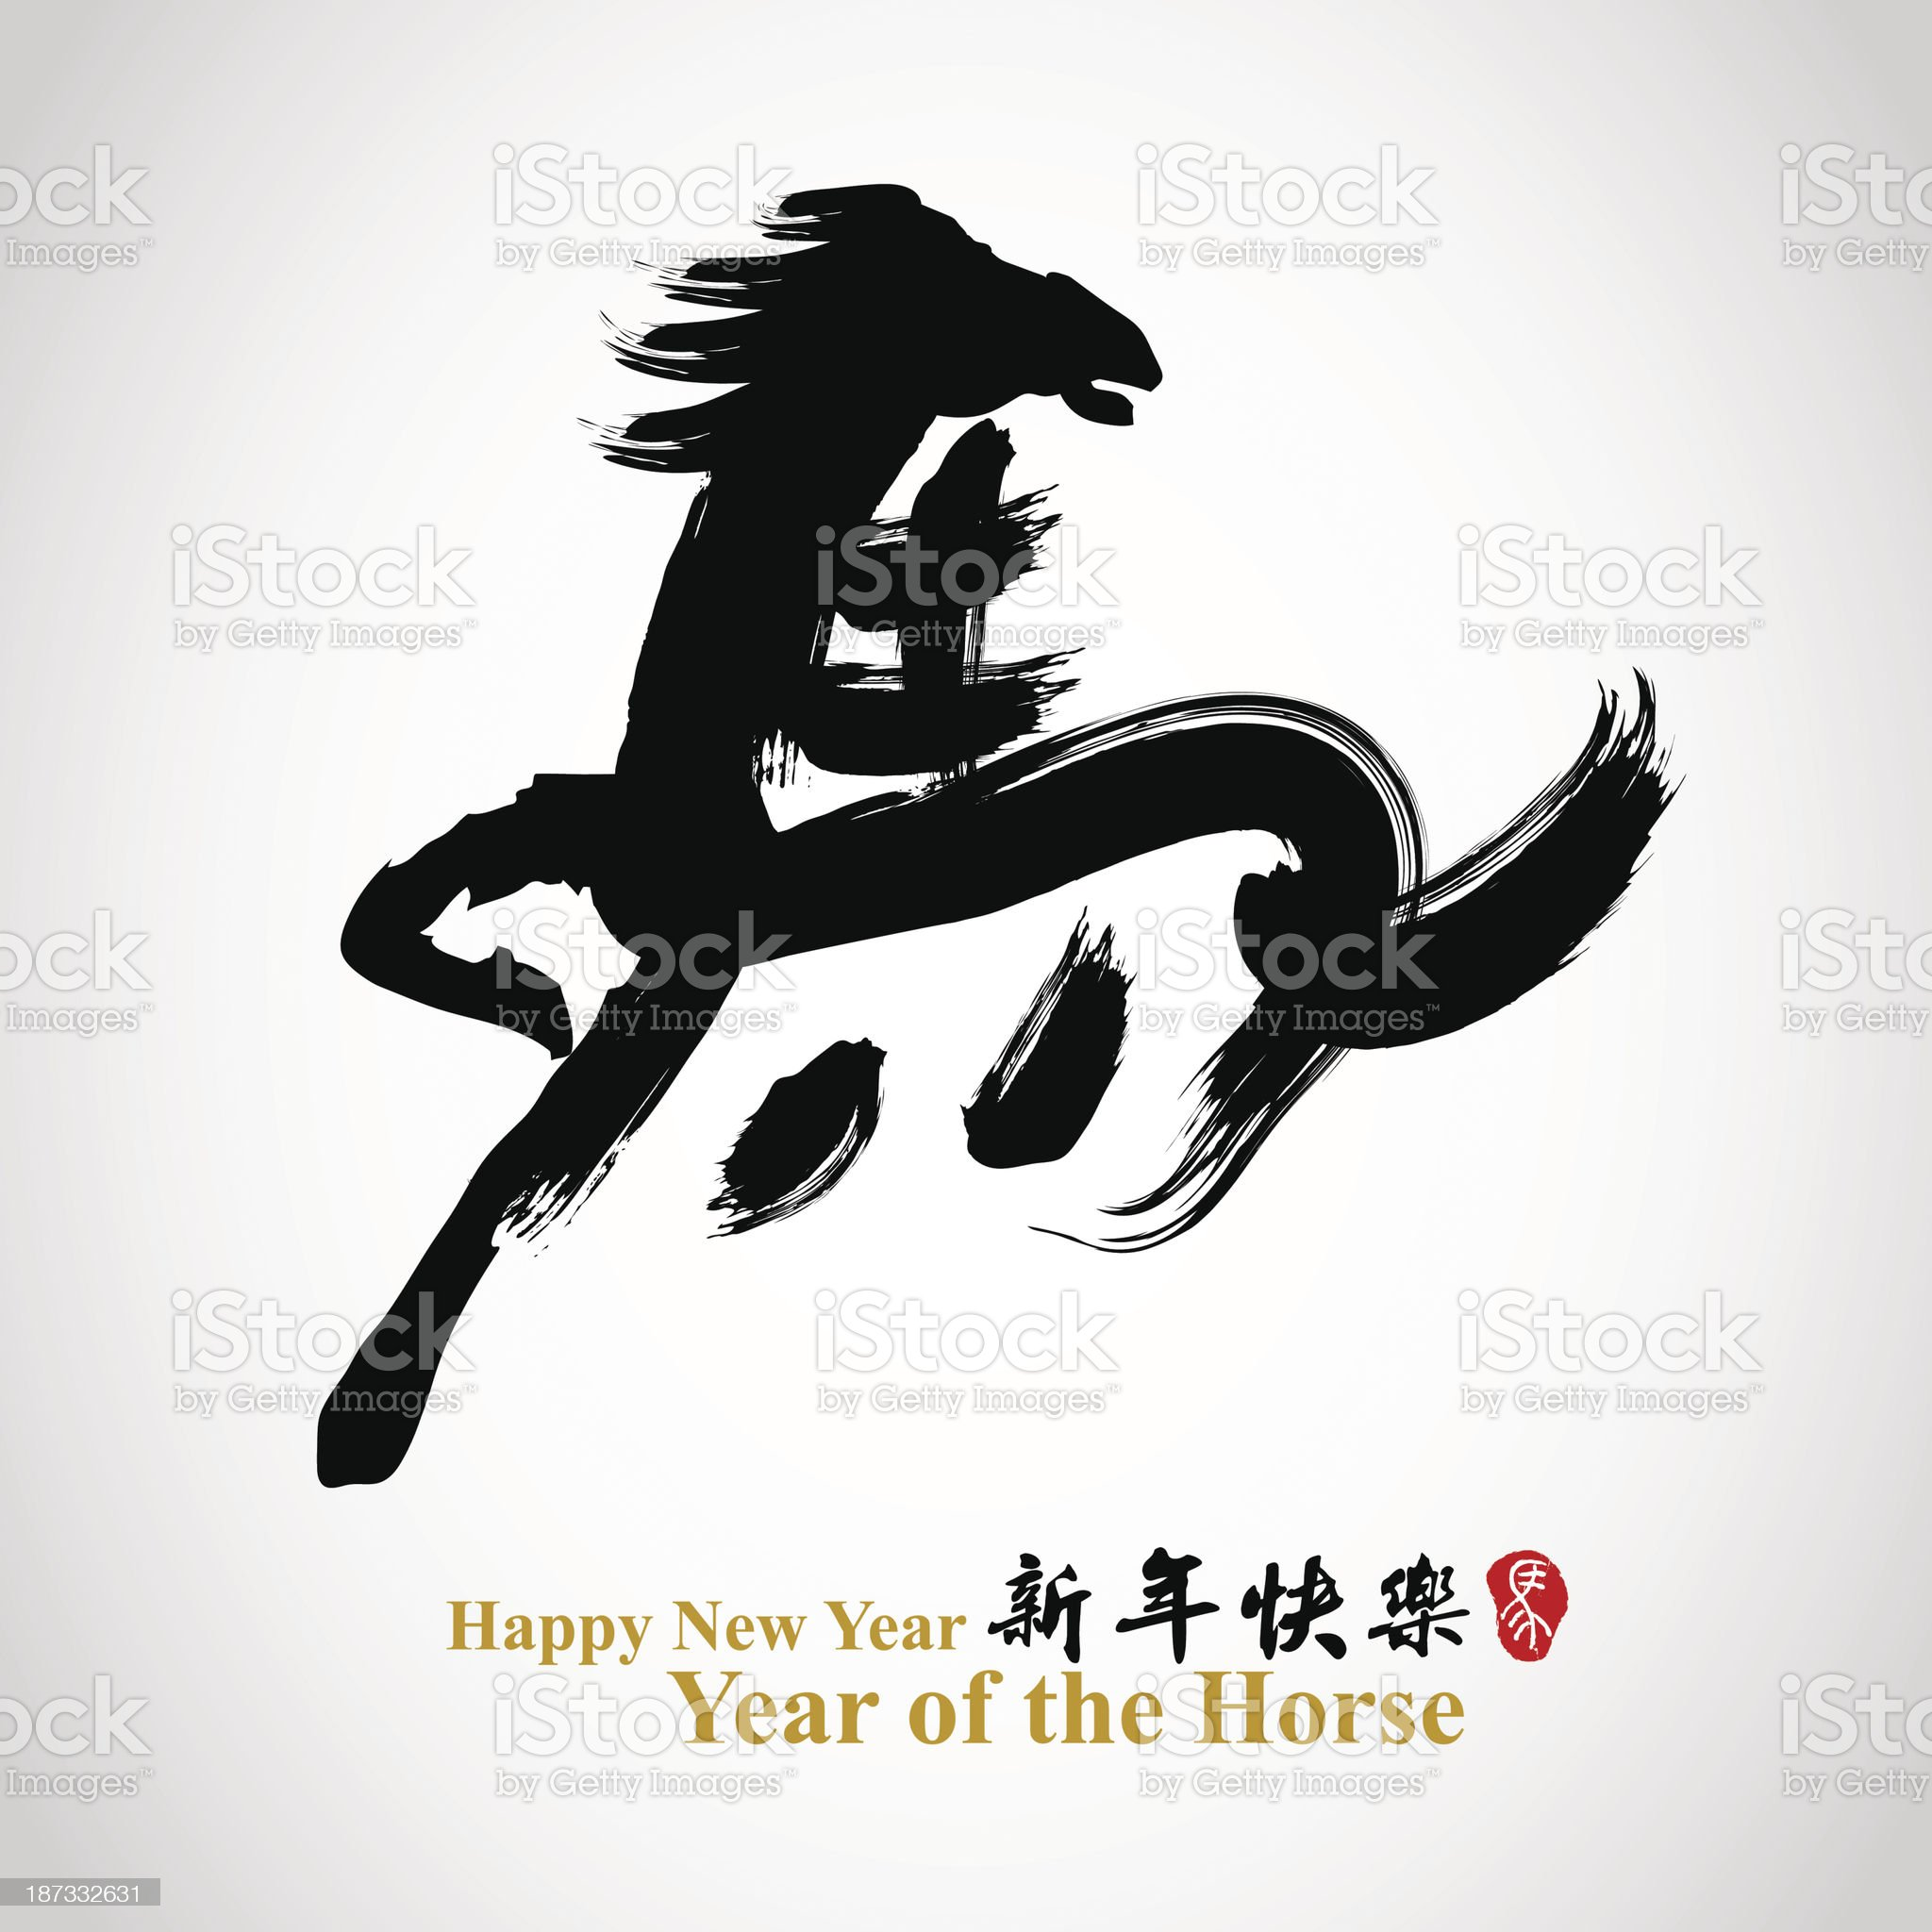 Calligraphy design for Year of the Horse royalty-free stock vector art